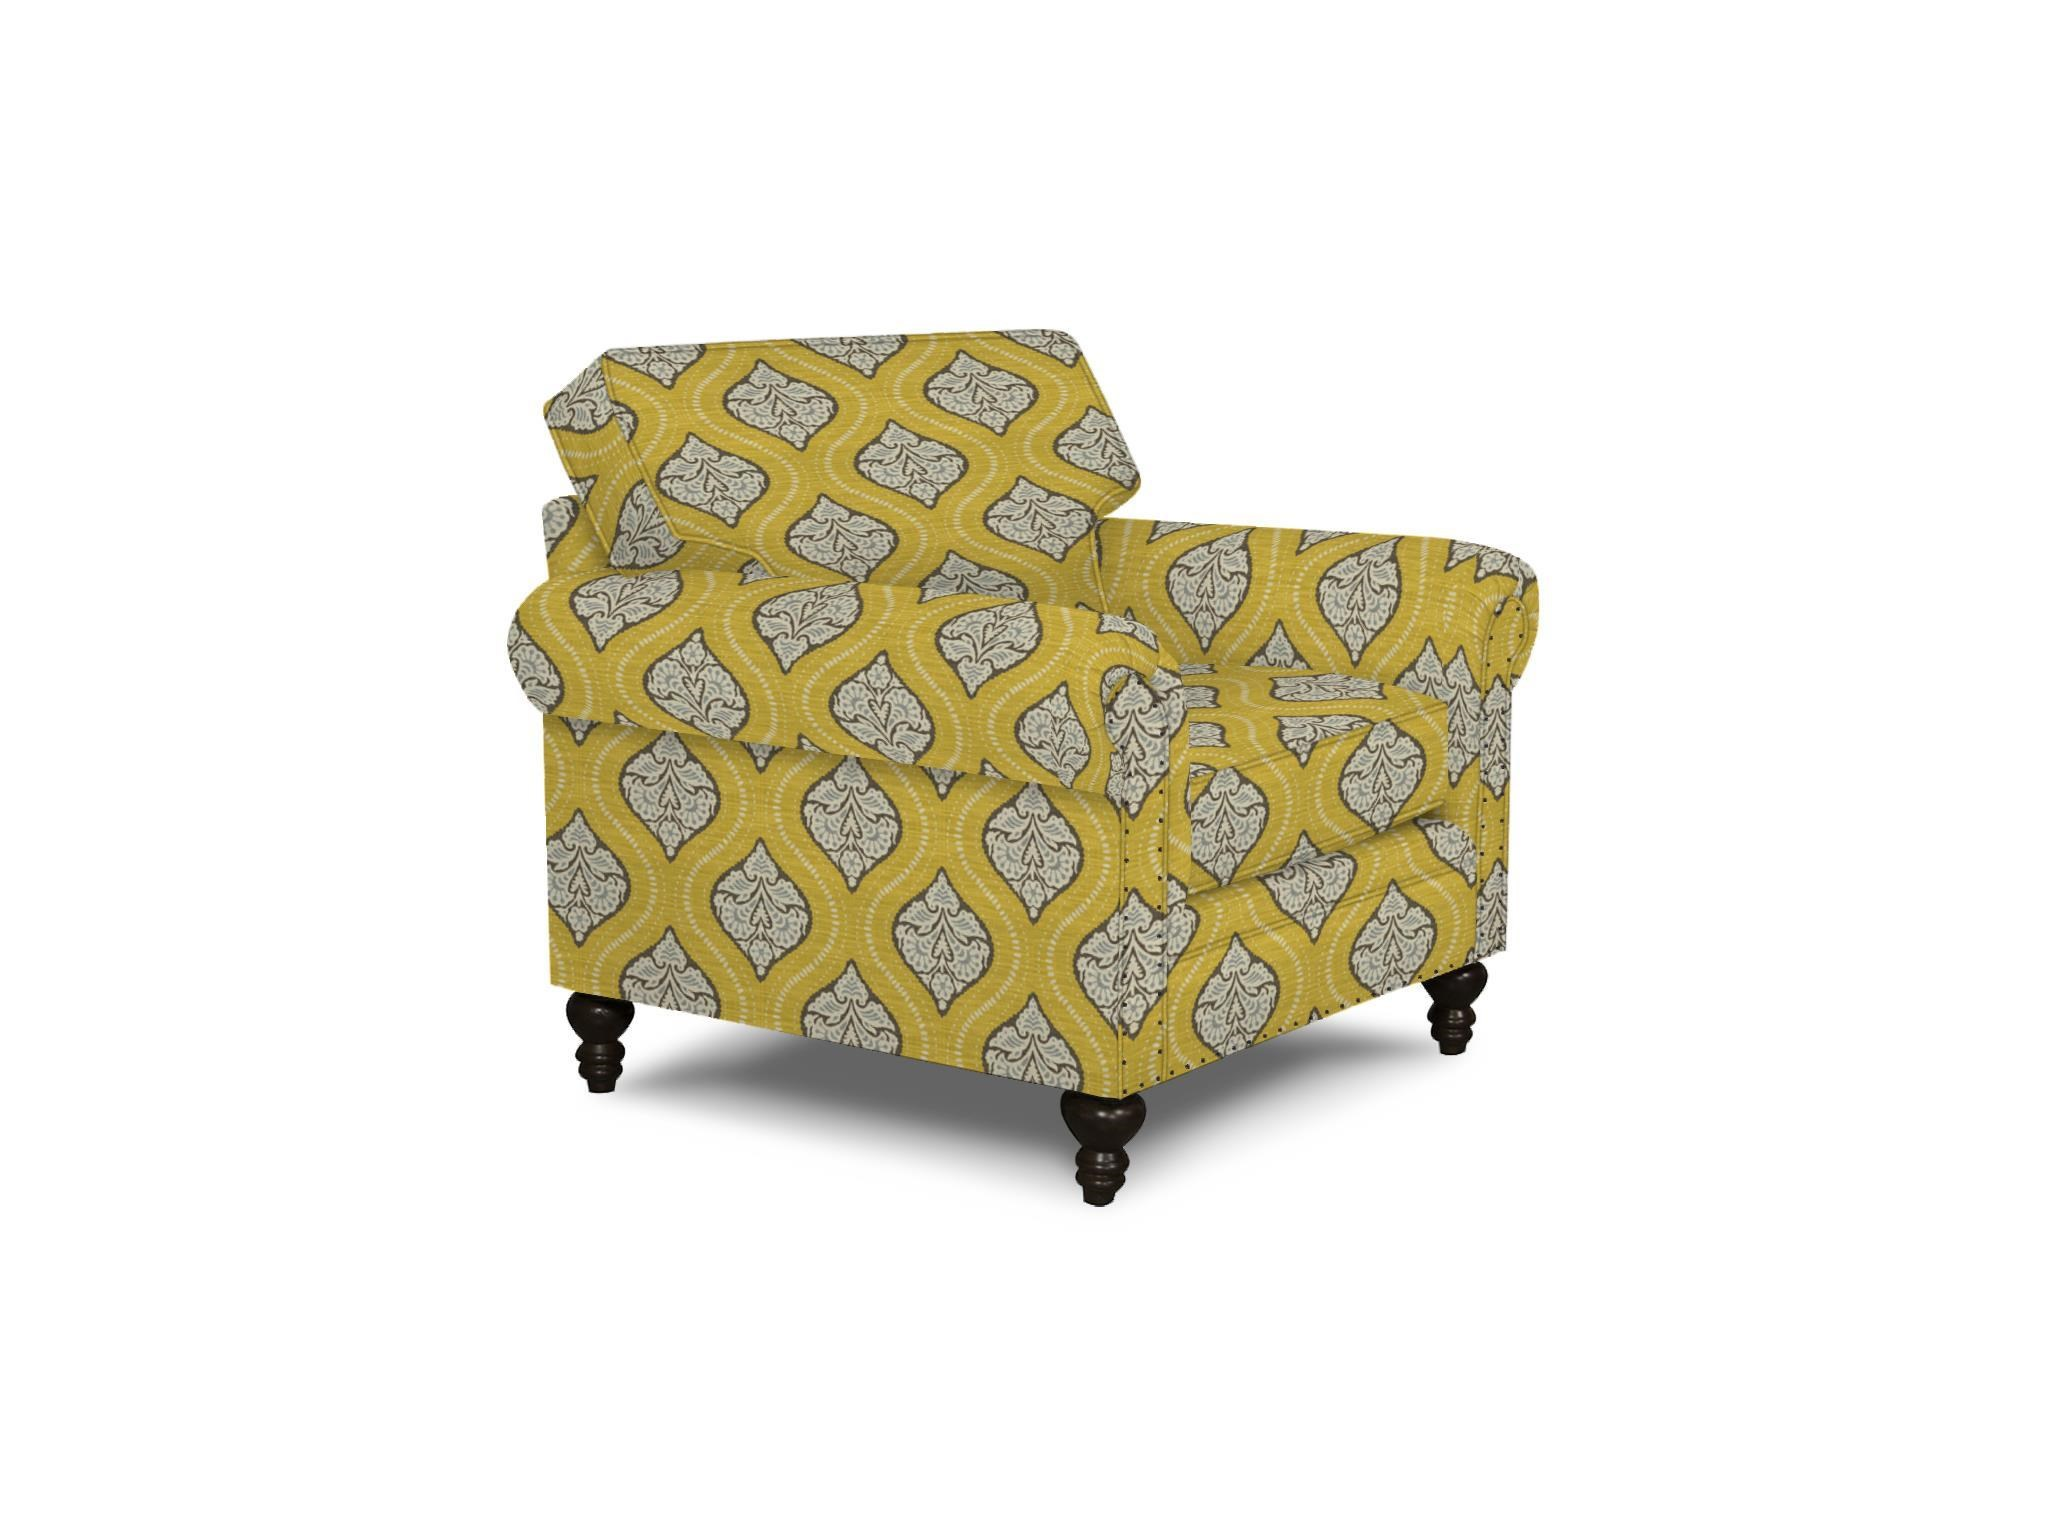 England Renea Upholstered Chair - Item Number: 5R04N Chair